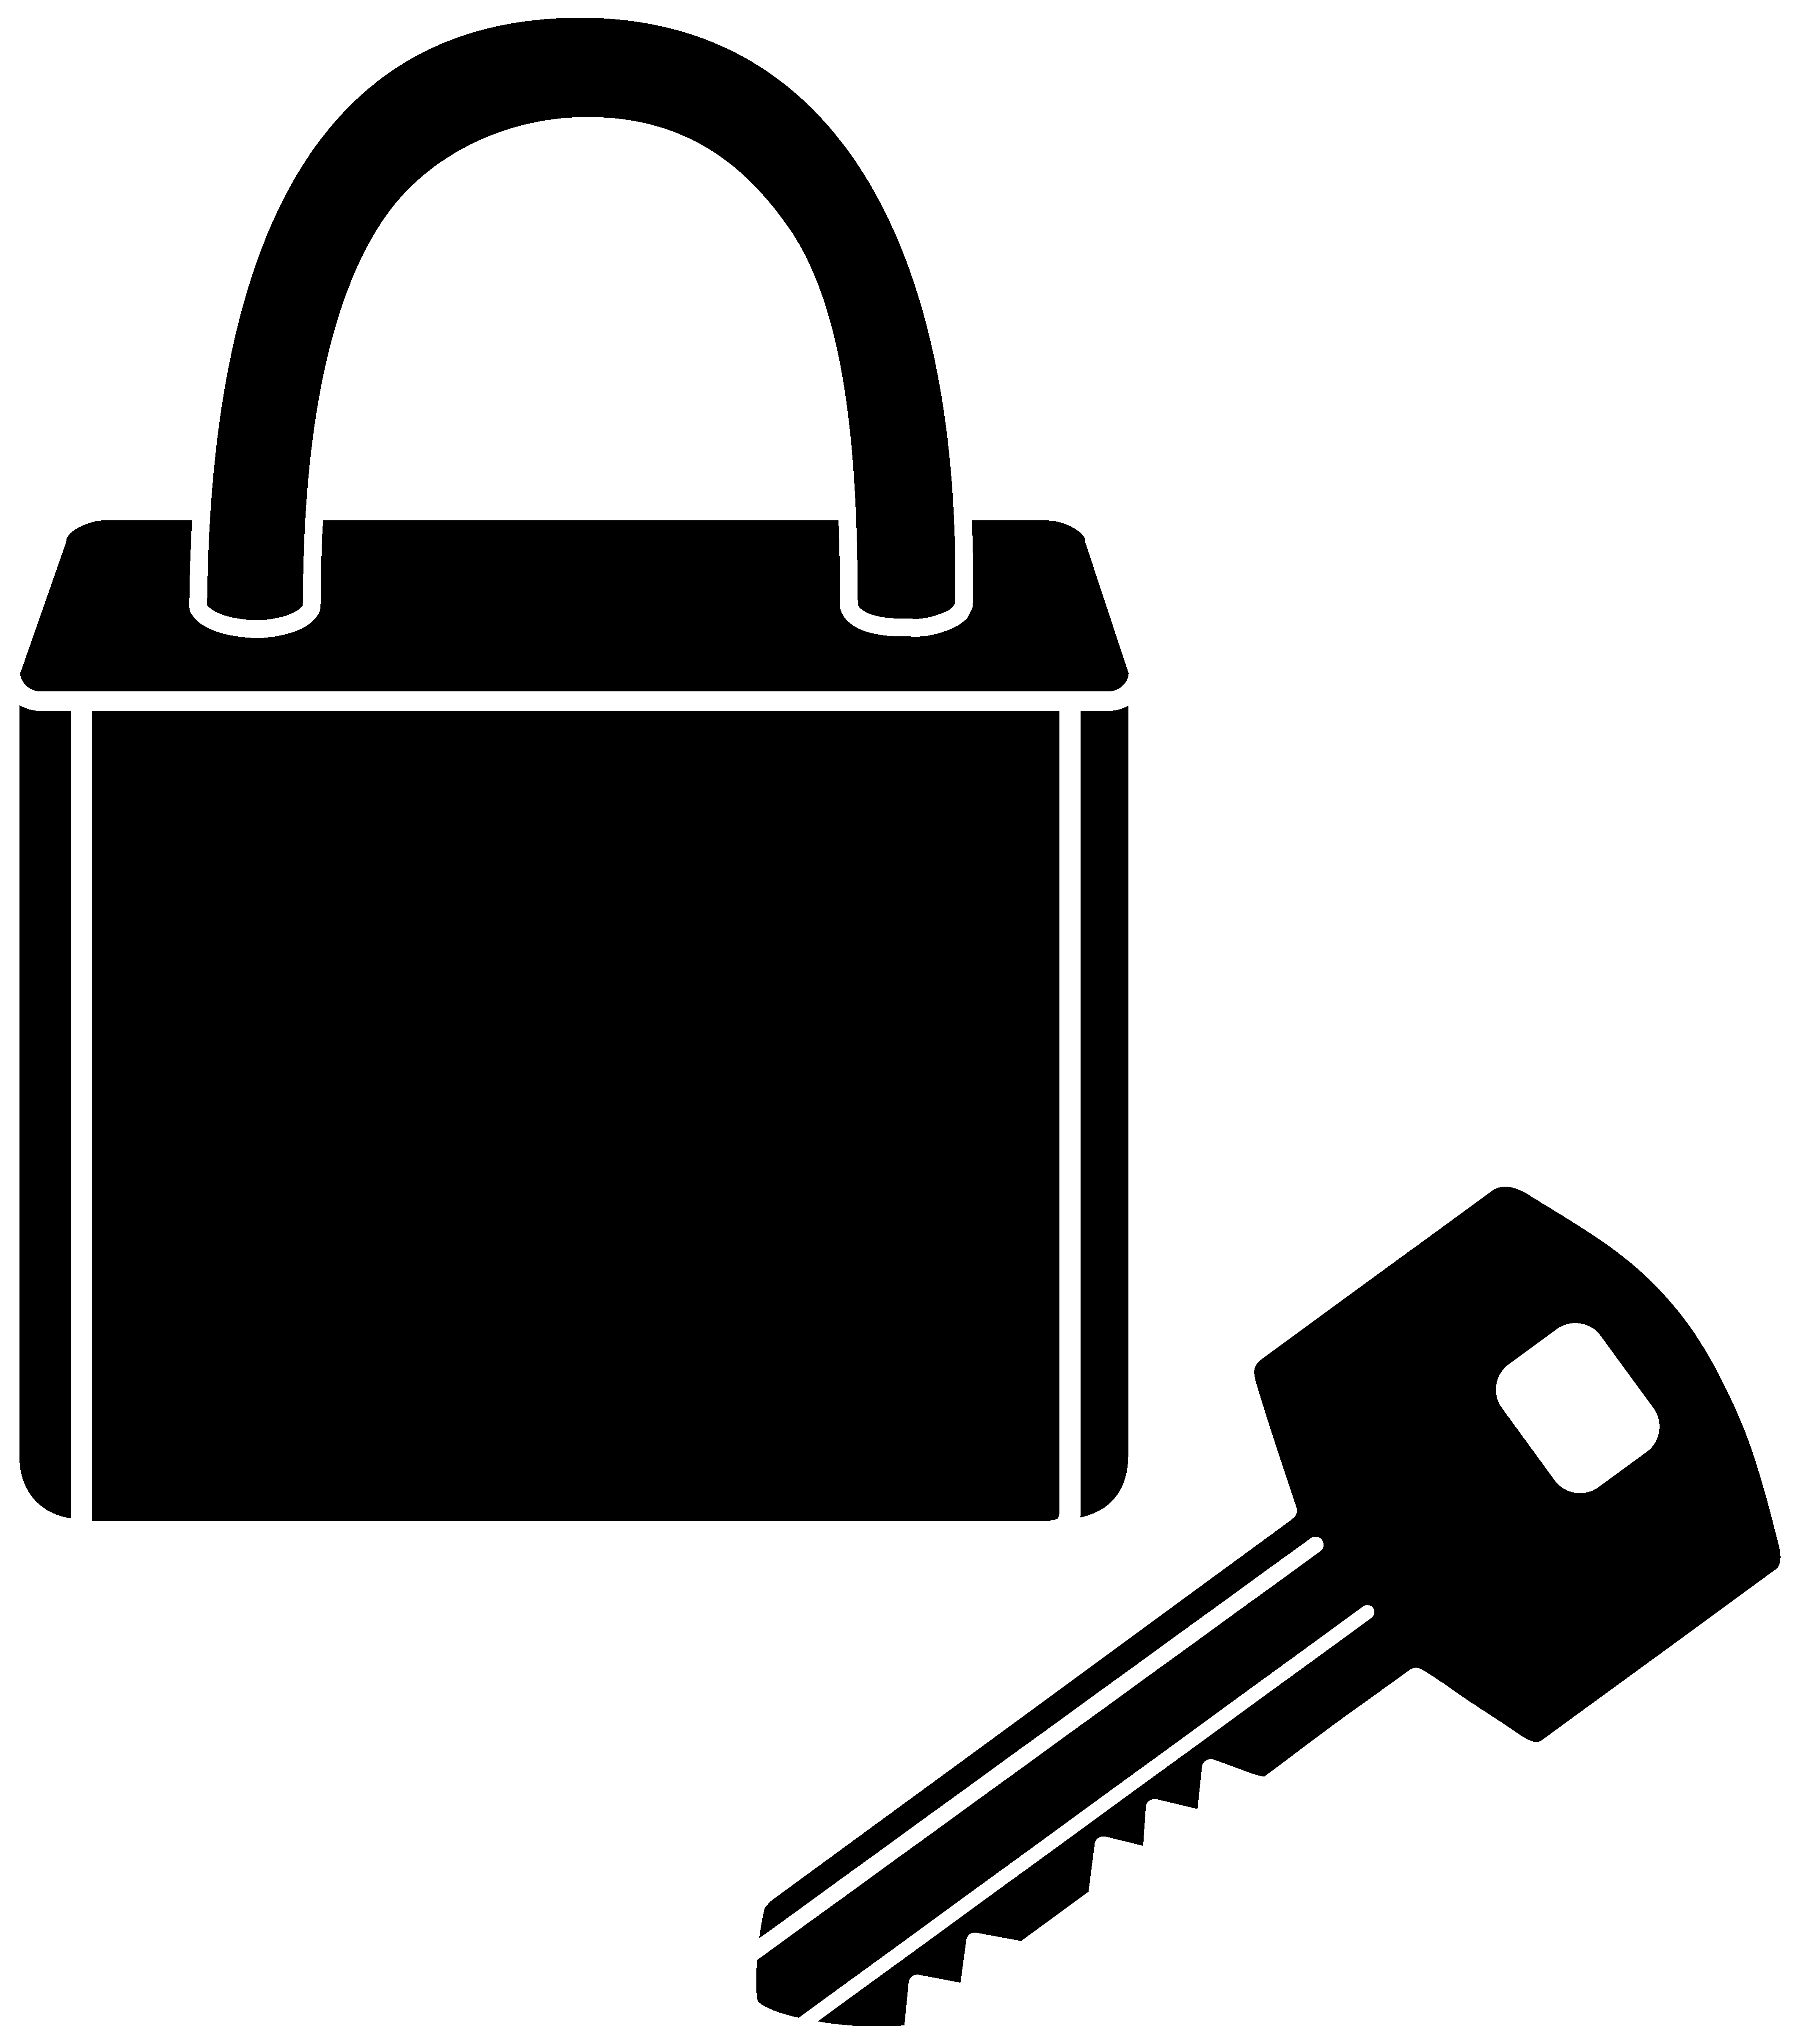 Key clipart key lock #15